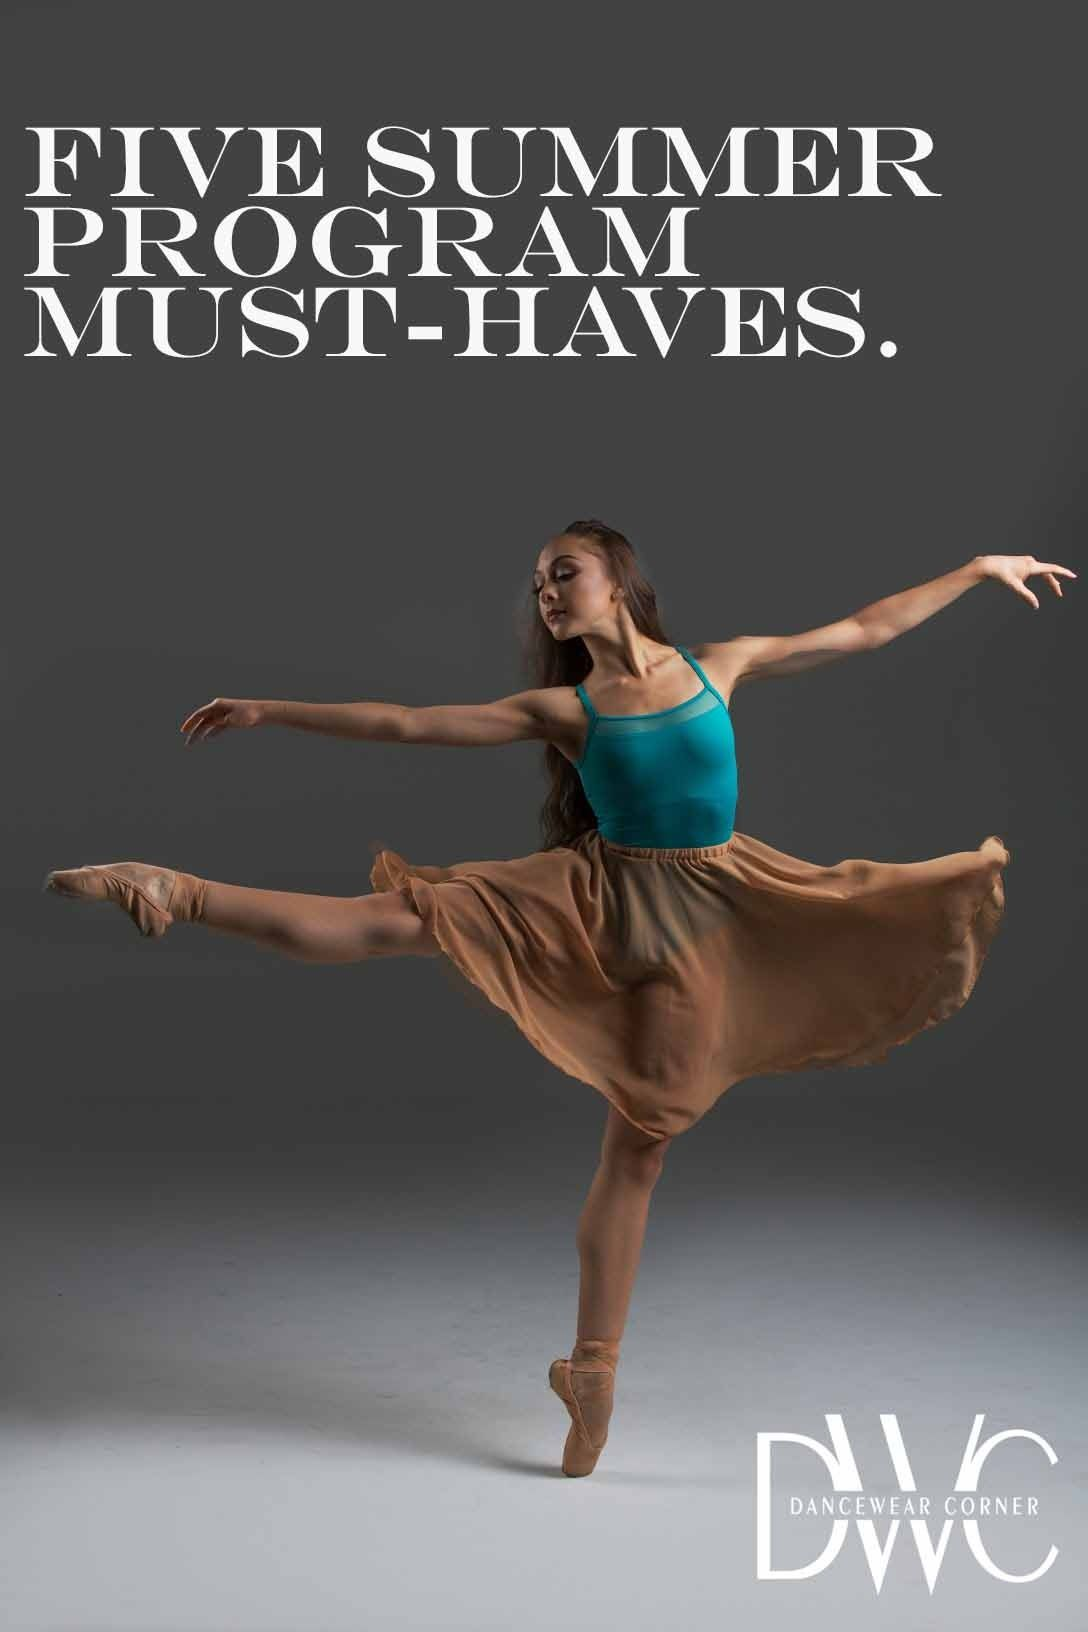 08d6dae78e7 Dancing Shoes · Five Dance Summer Program Must-Haves http   blog. dancewearcorner.com